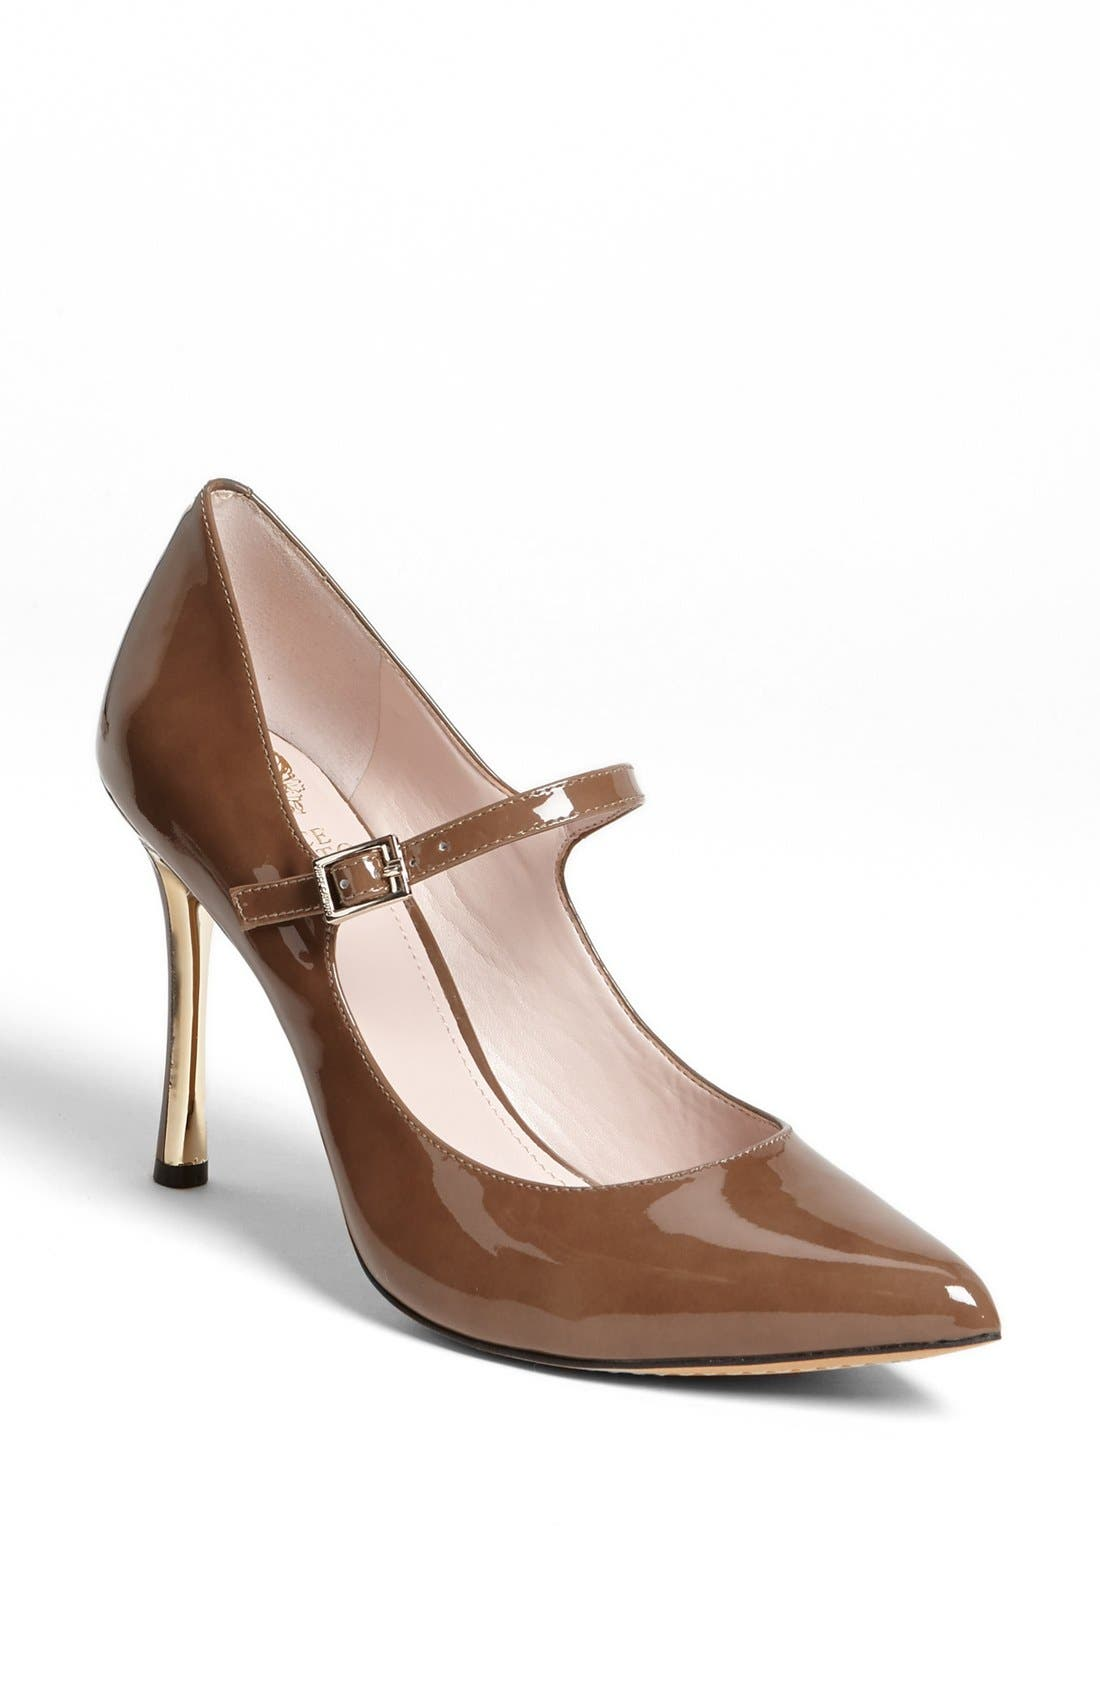 Alternate Image 1 Selected - Vince Camuto 'Callea' Pump